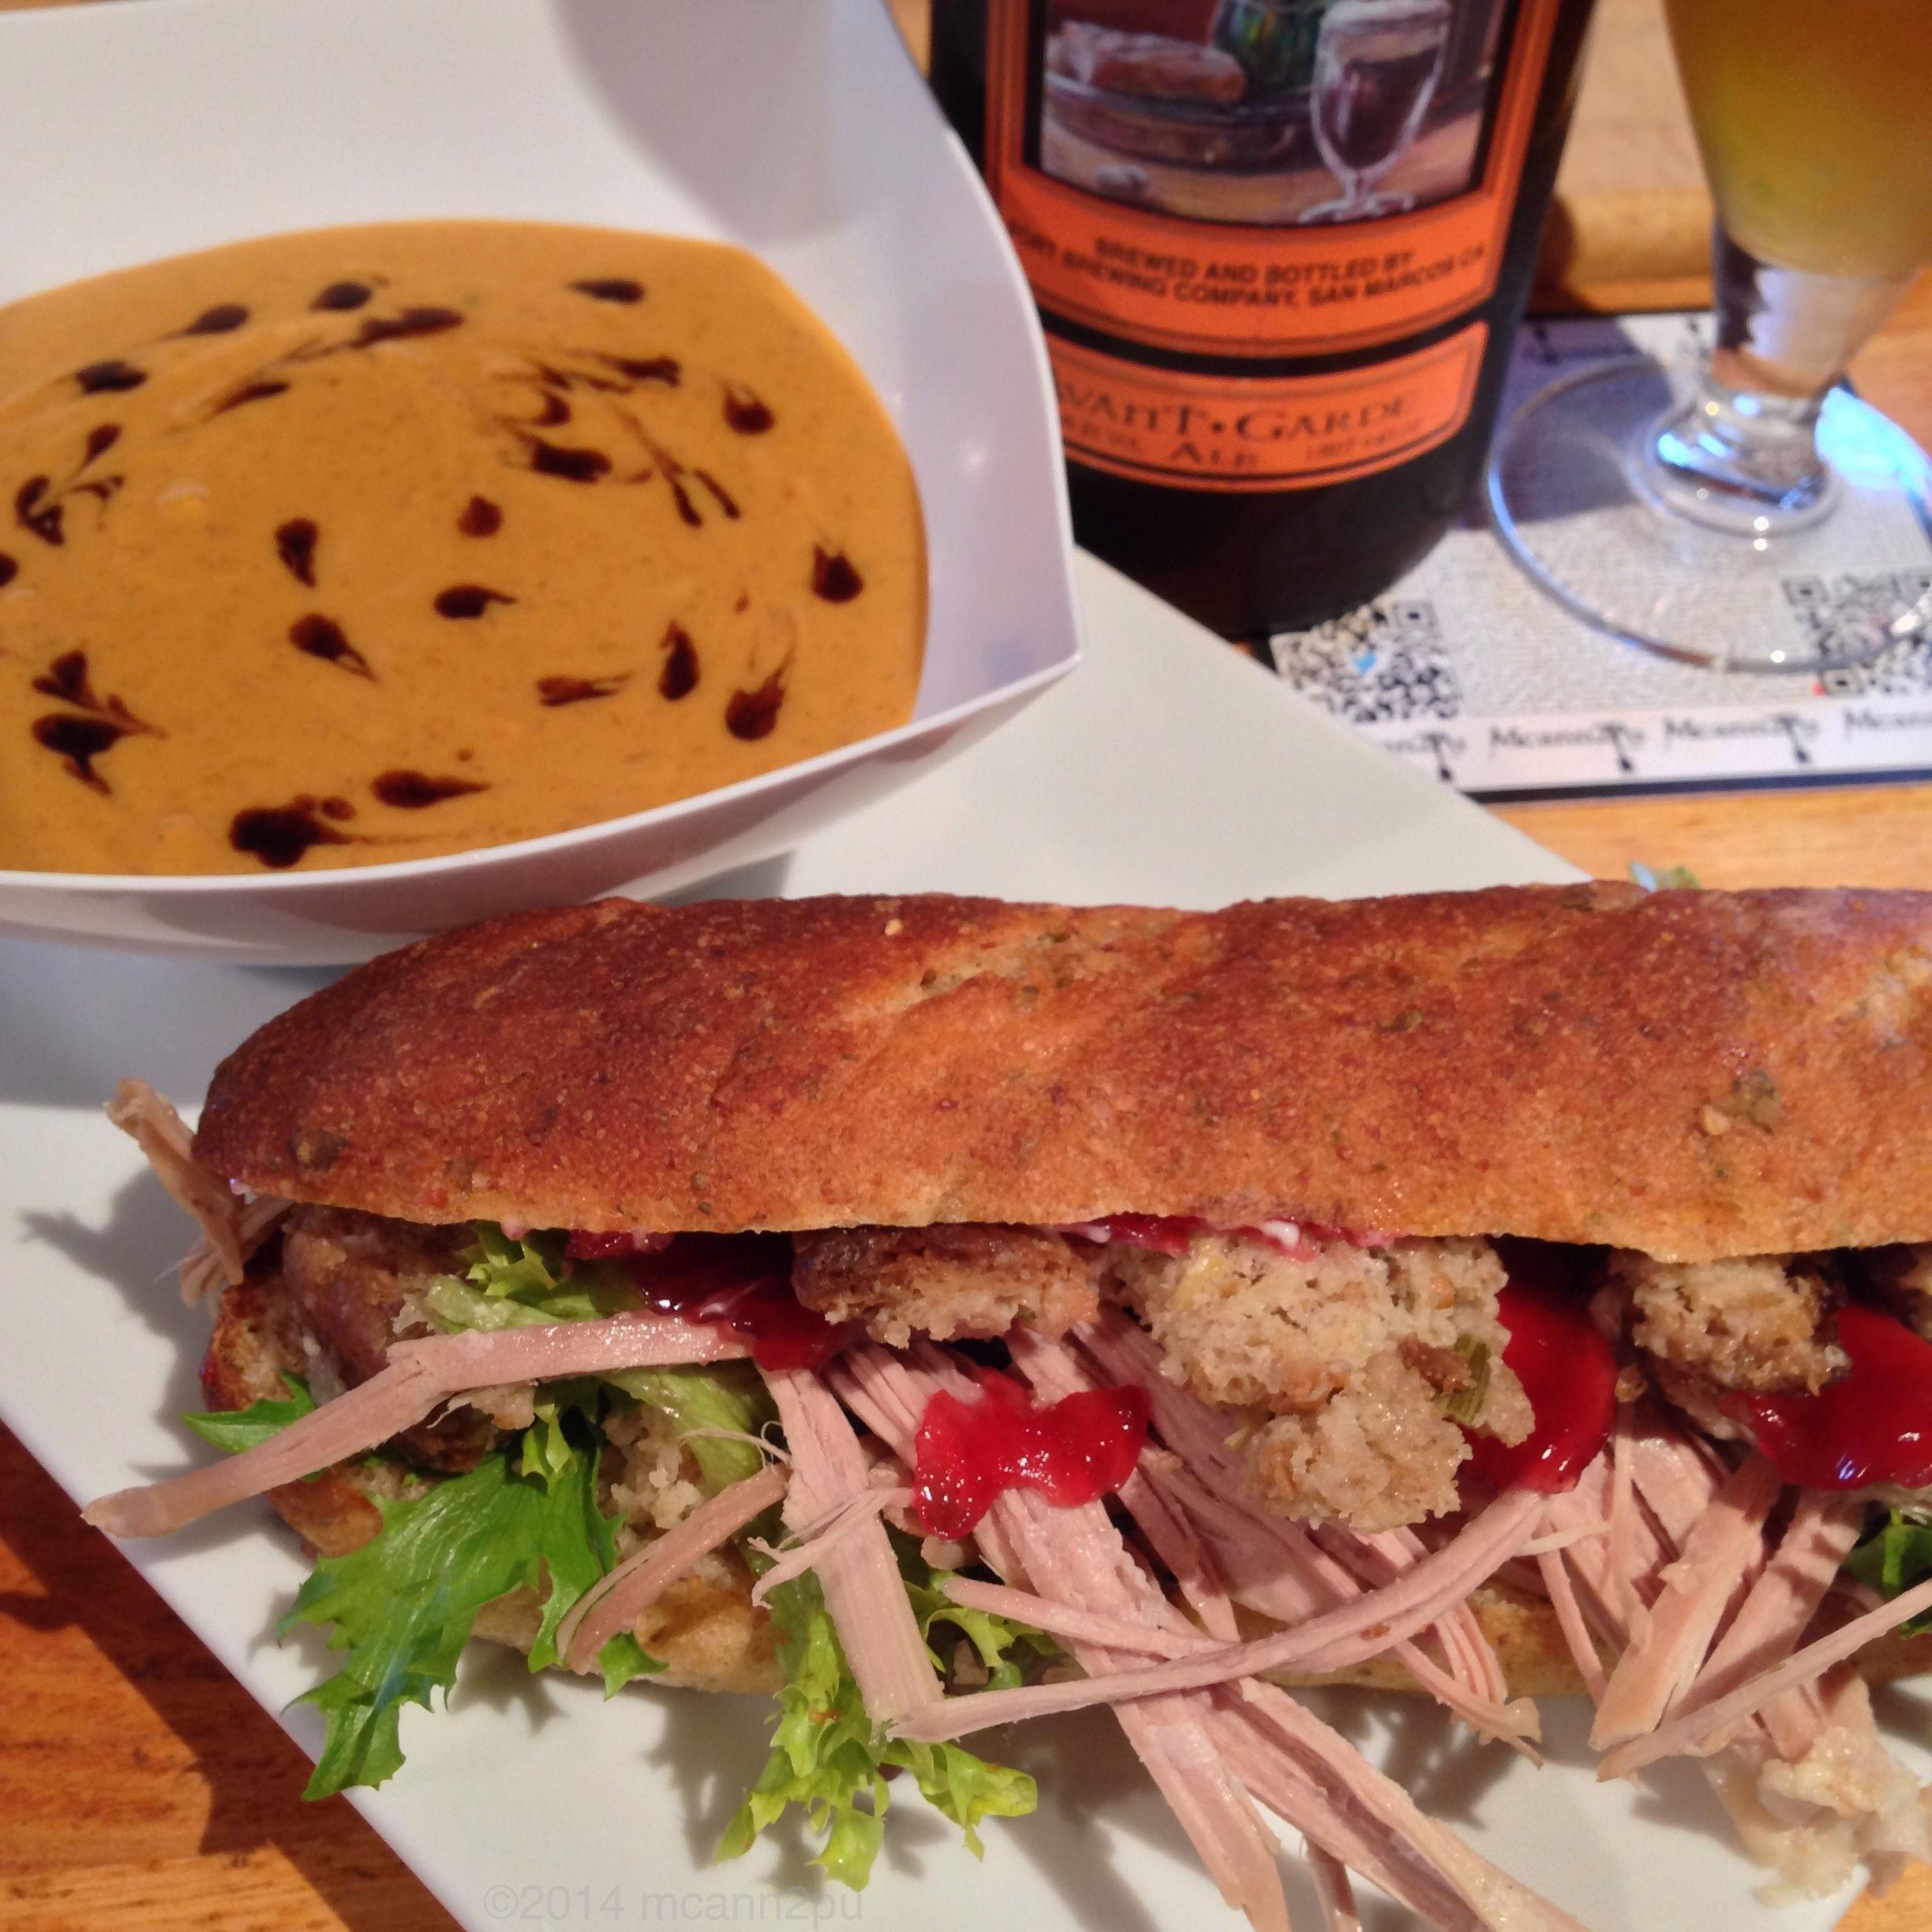 Bobbie Sandwich and Spiced Butternut Bisque Soup for Thanksgiving